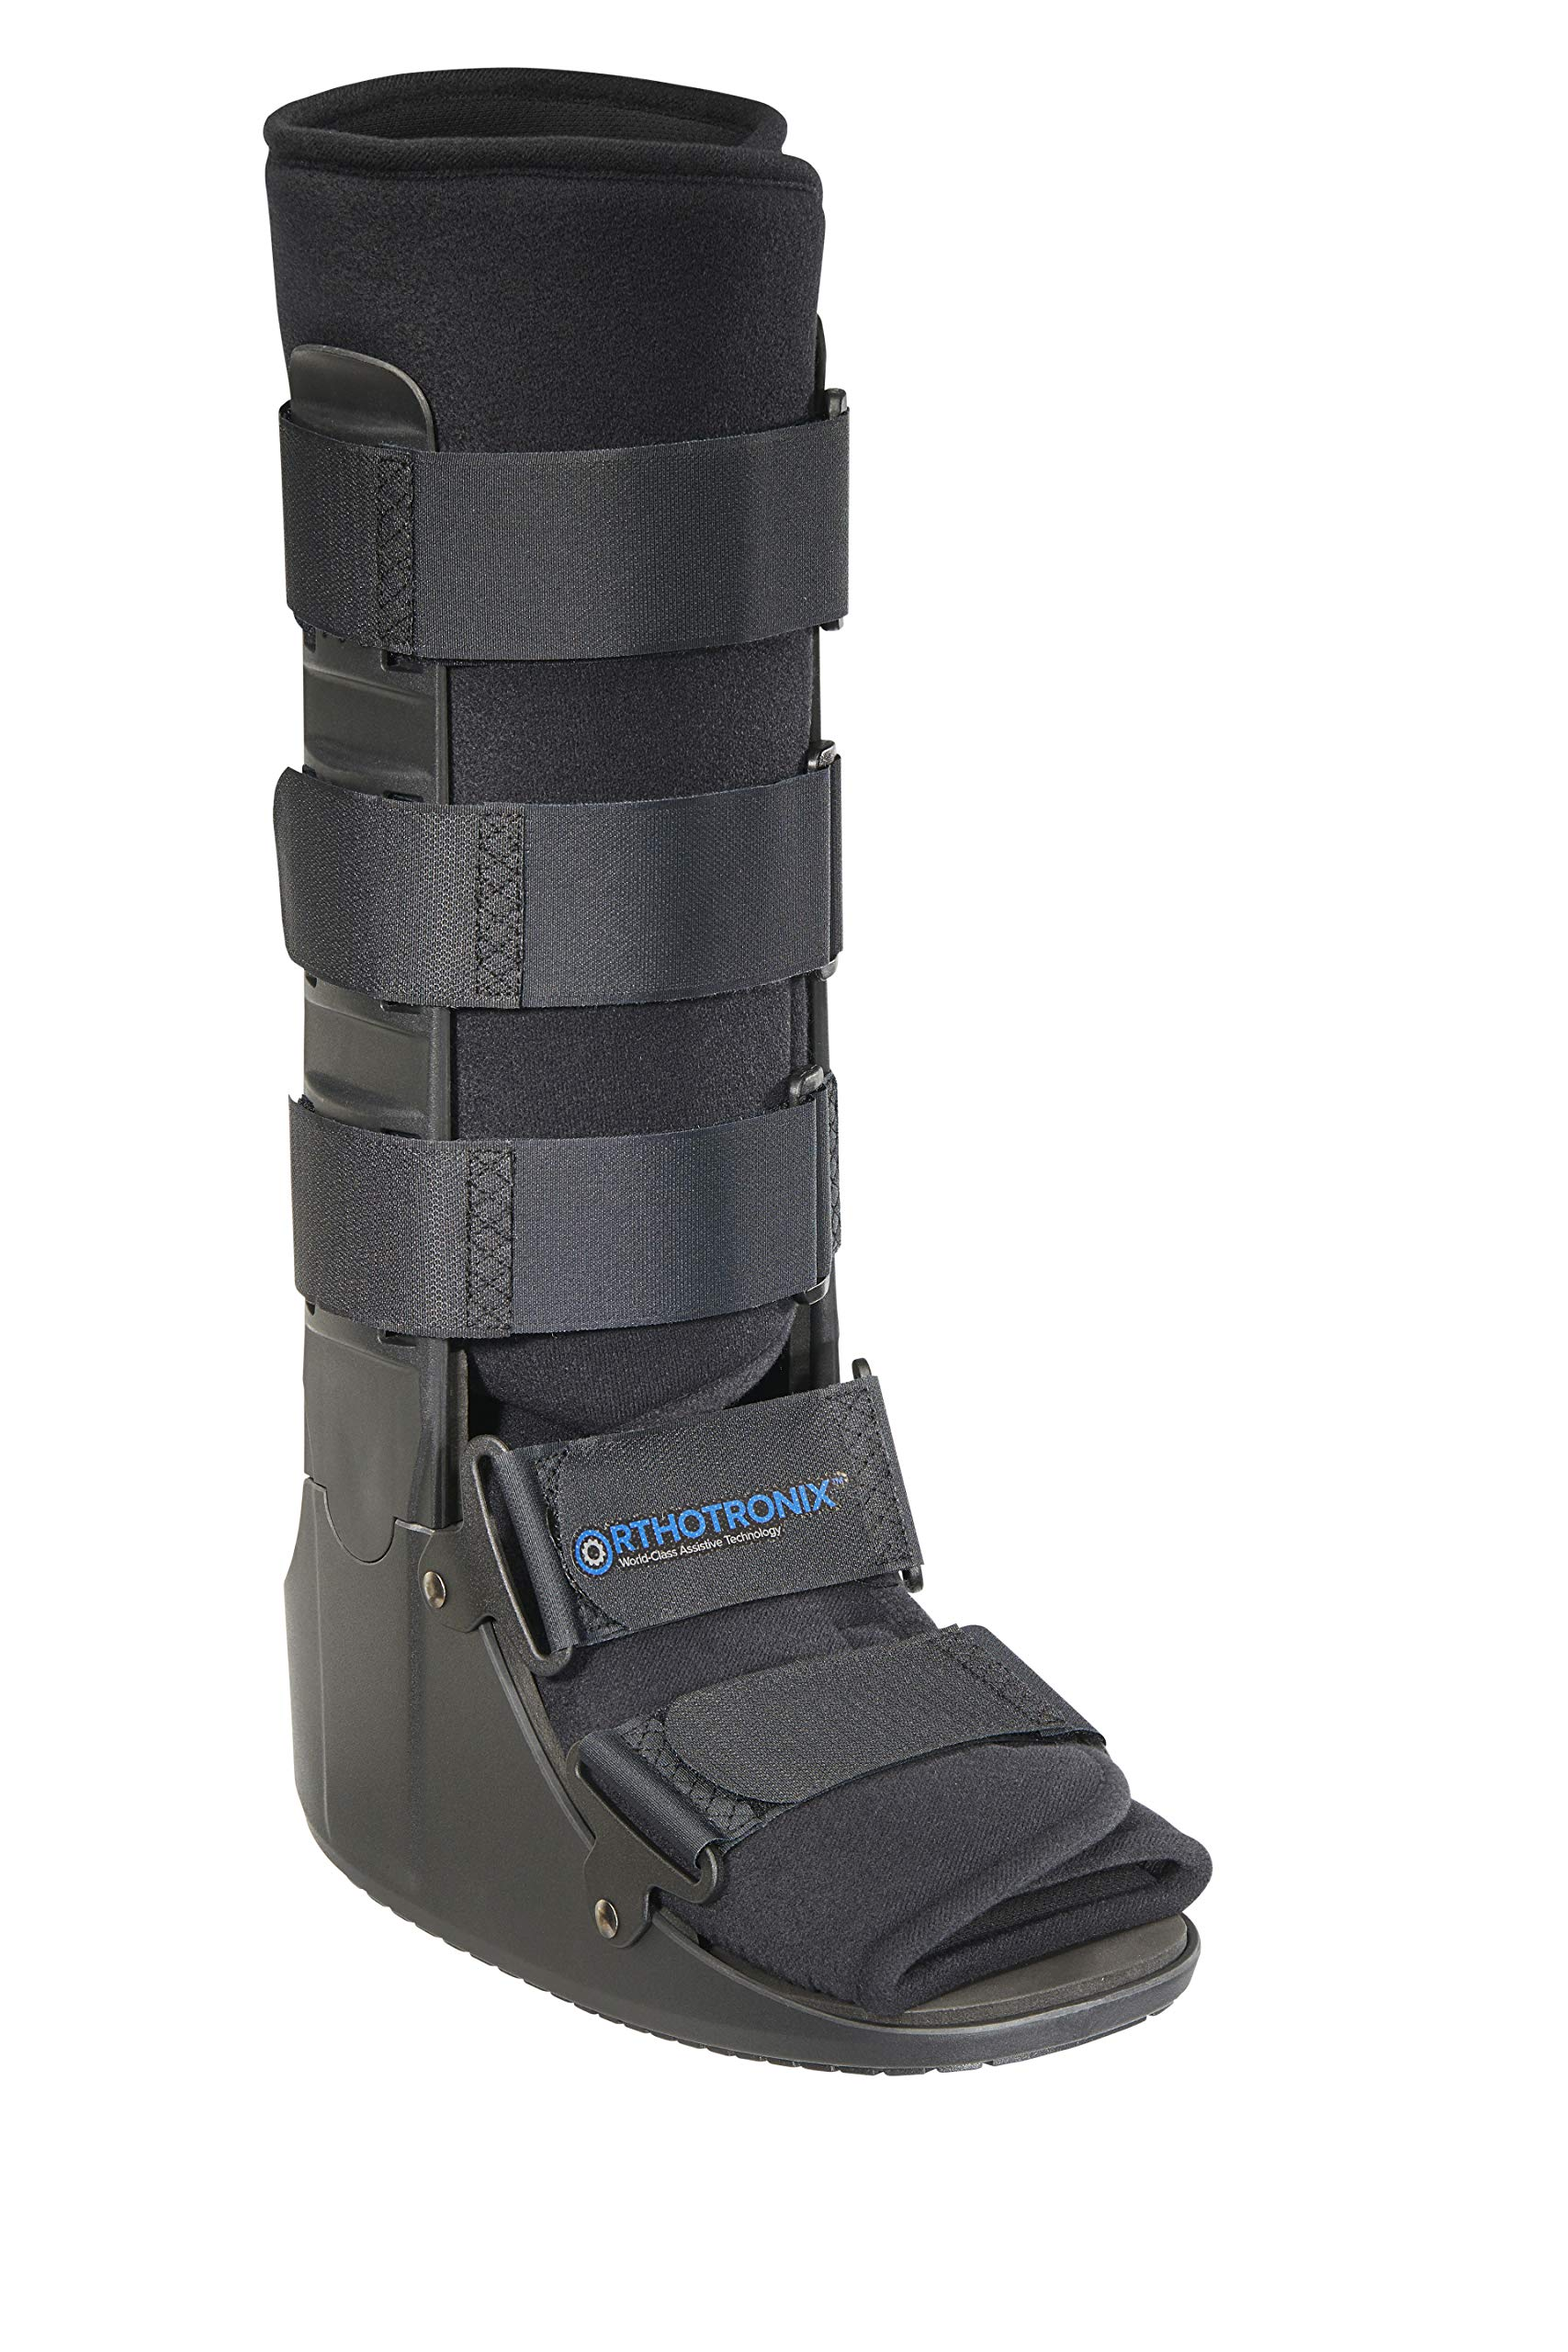 Orthotronix Tall Cam Walker Boot (Small)